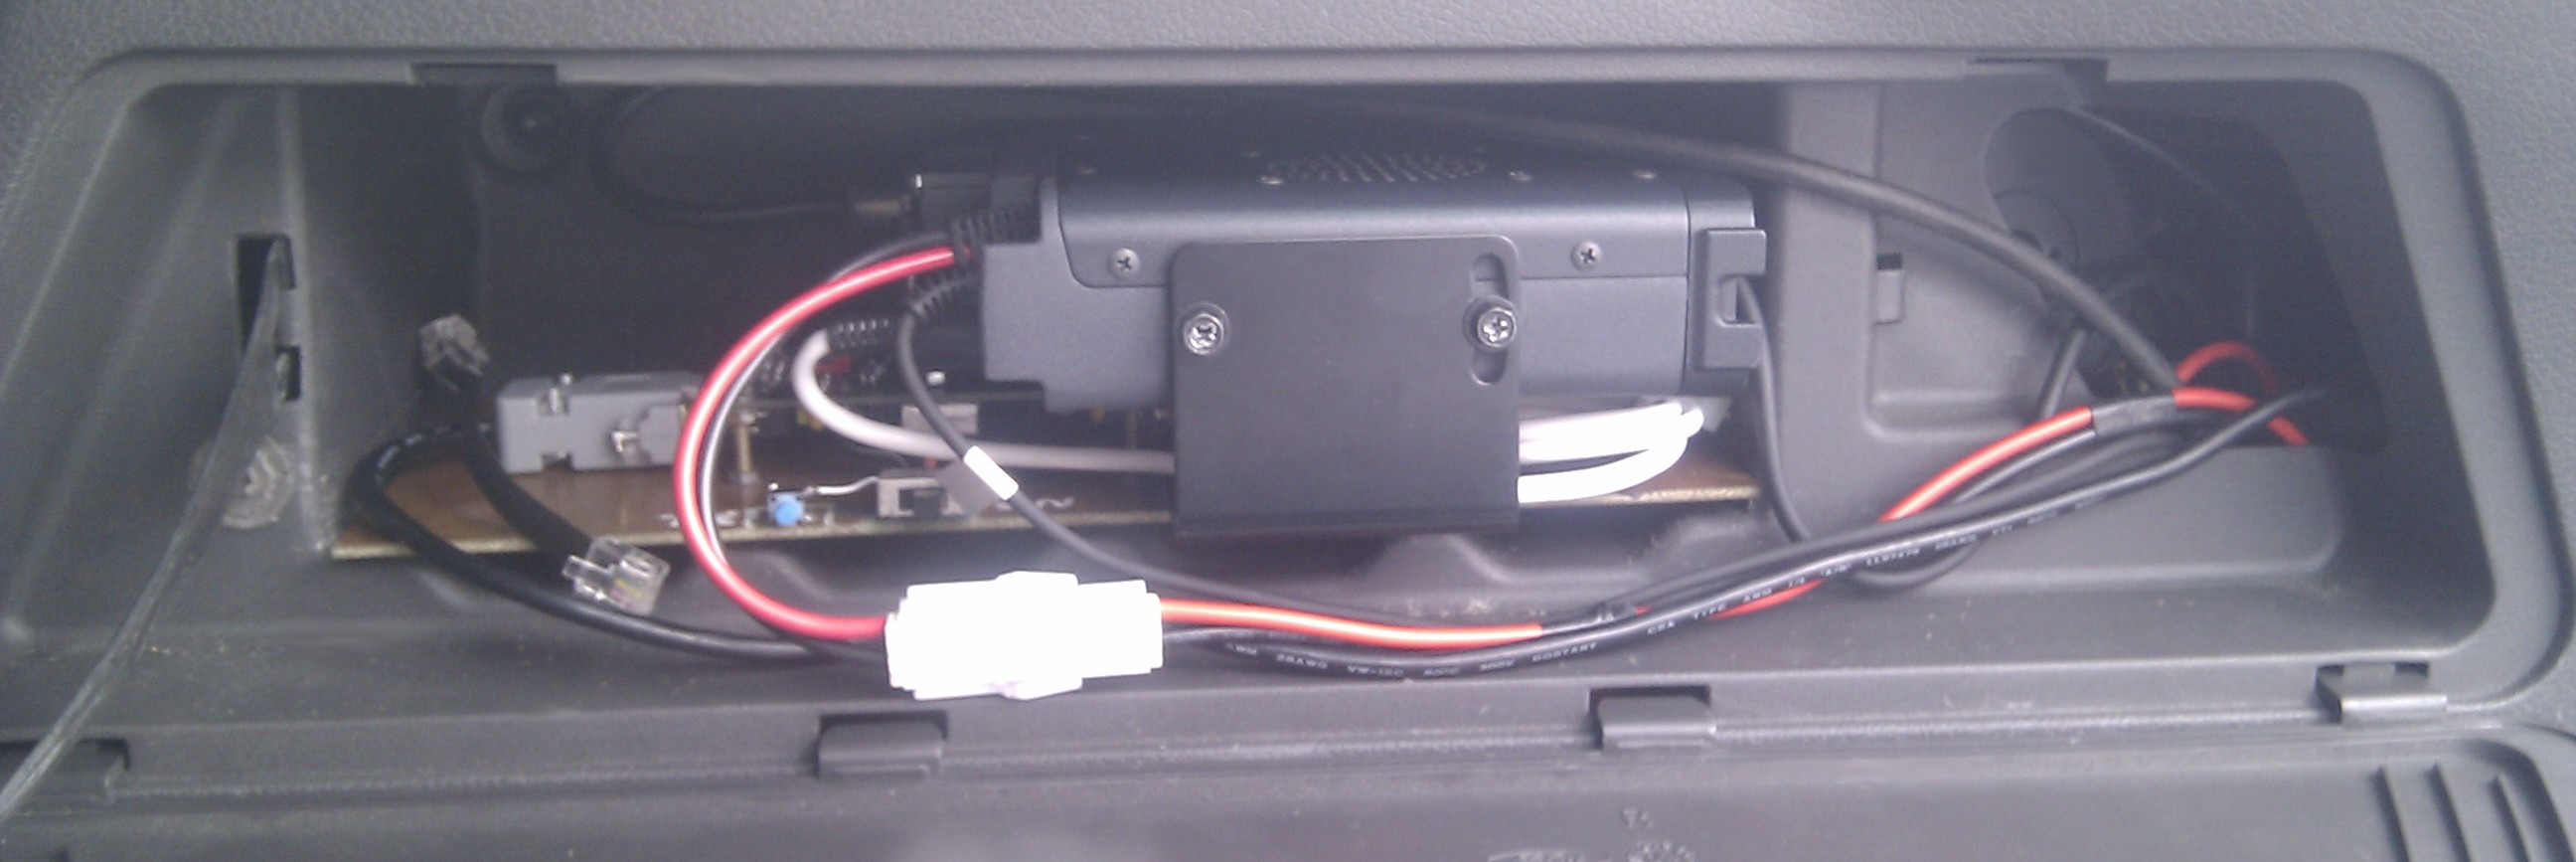 Radio and Tracker in car boot